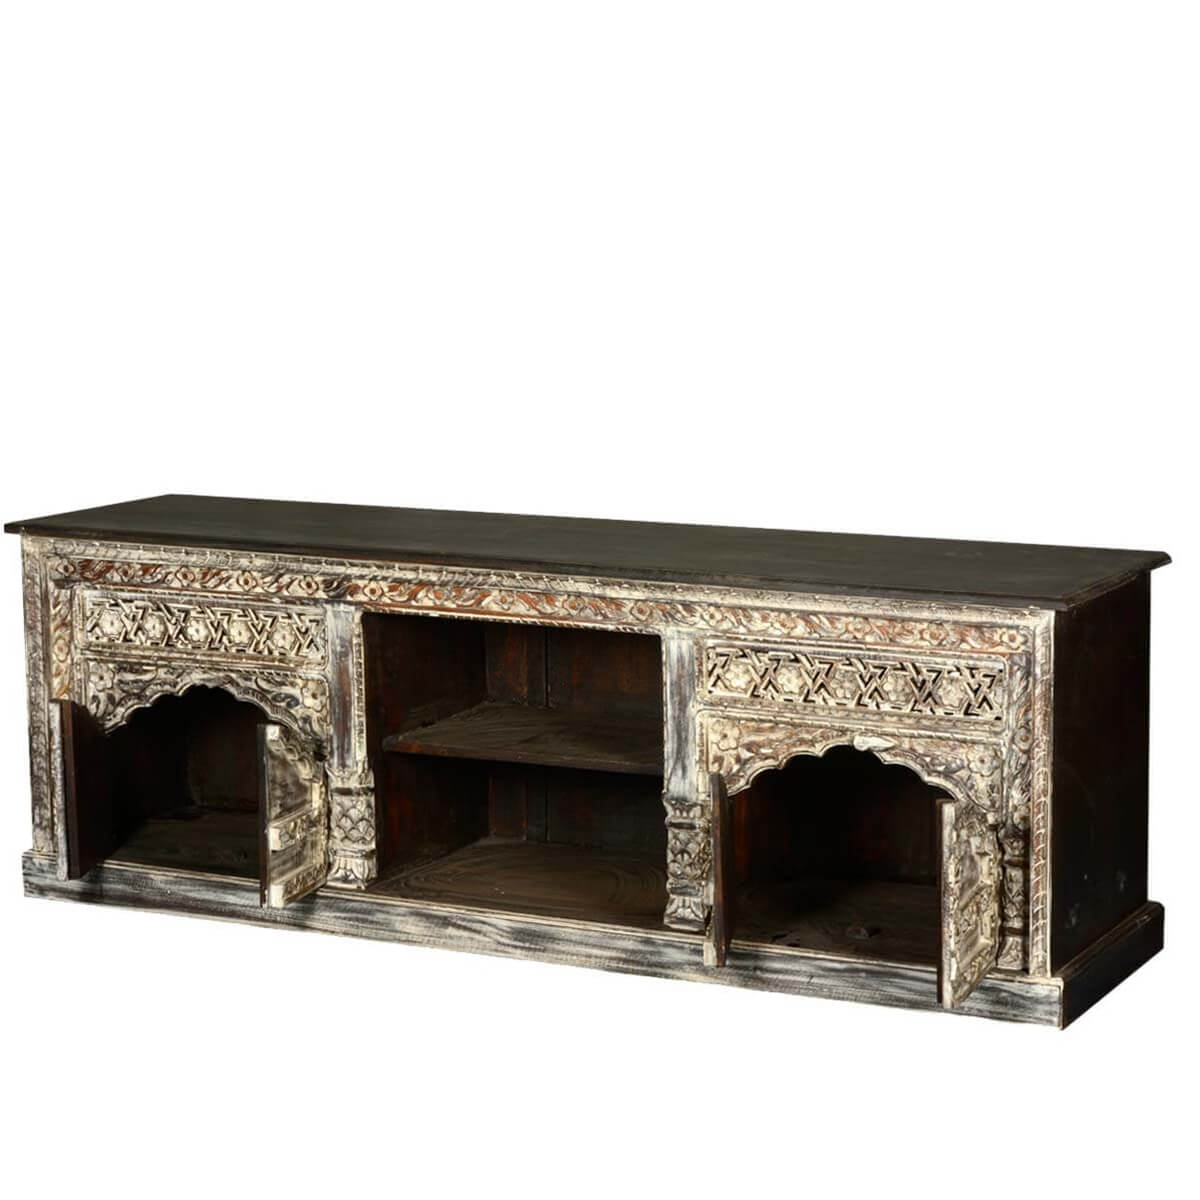 Reclaimed wood midnight snow castle tv stand media console for Barnwood media cabinet